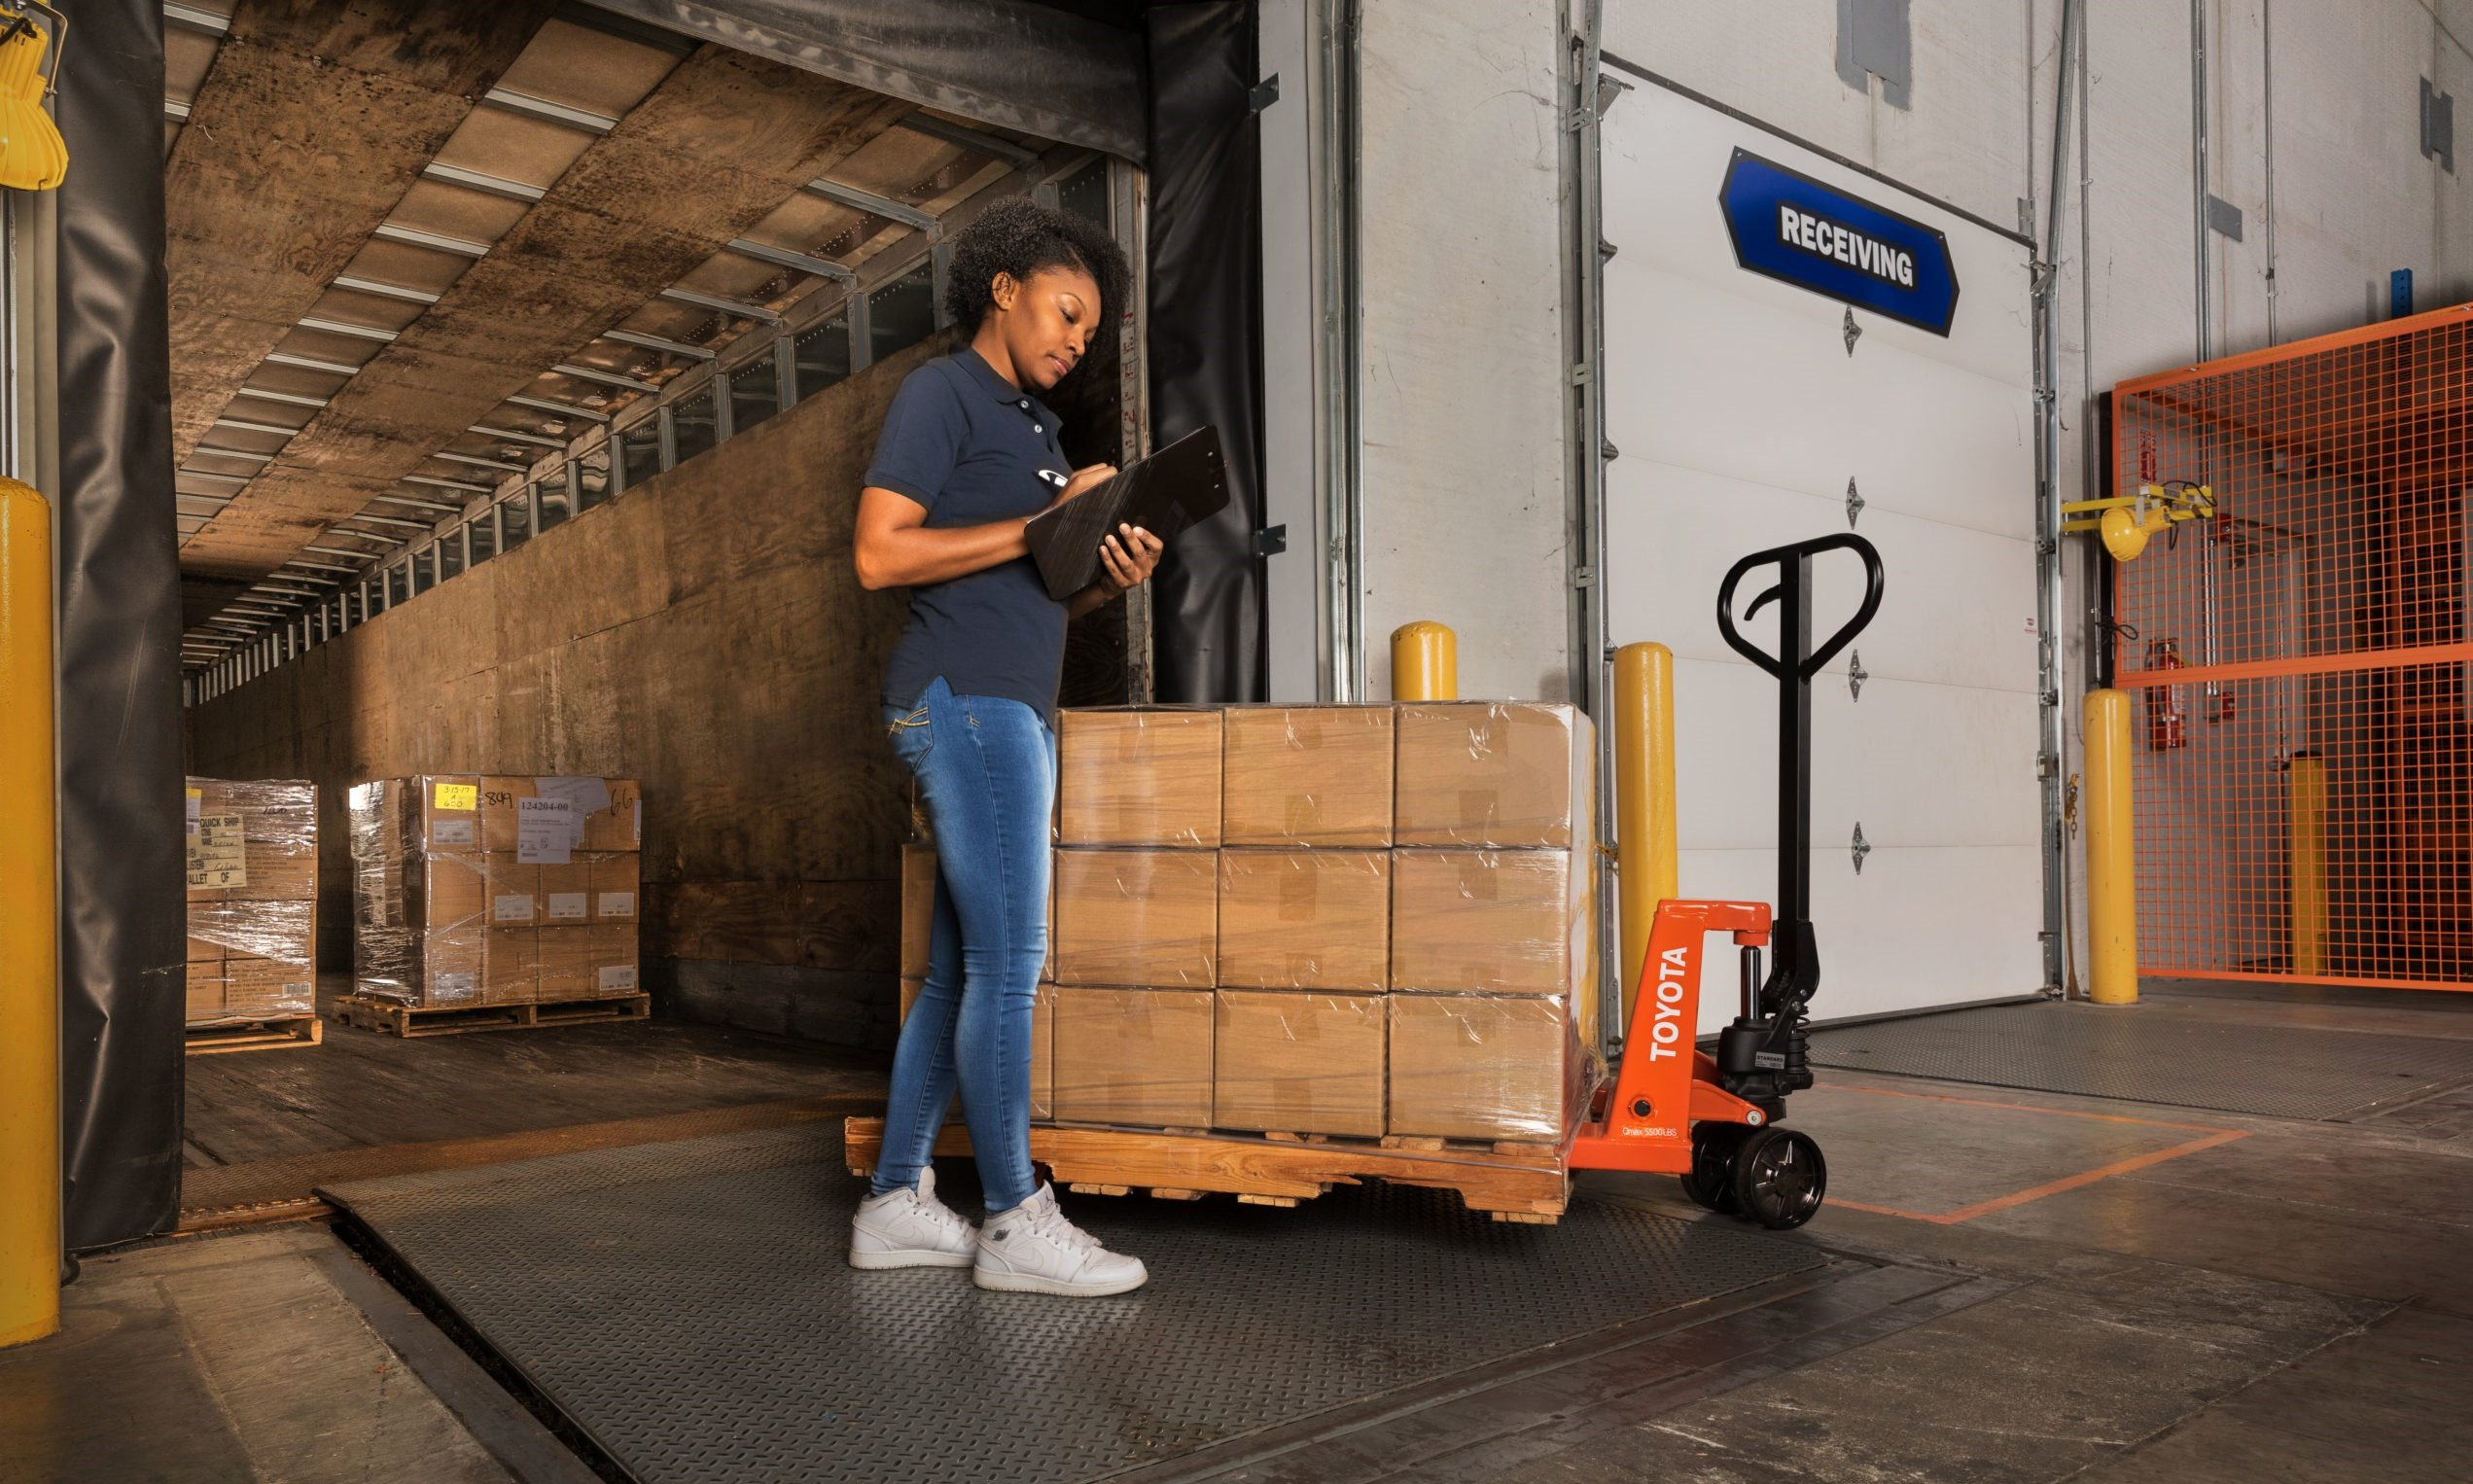 Warehouse Loading Dock: 4 Best Practices to Optimize Efficiency & Safety